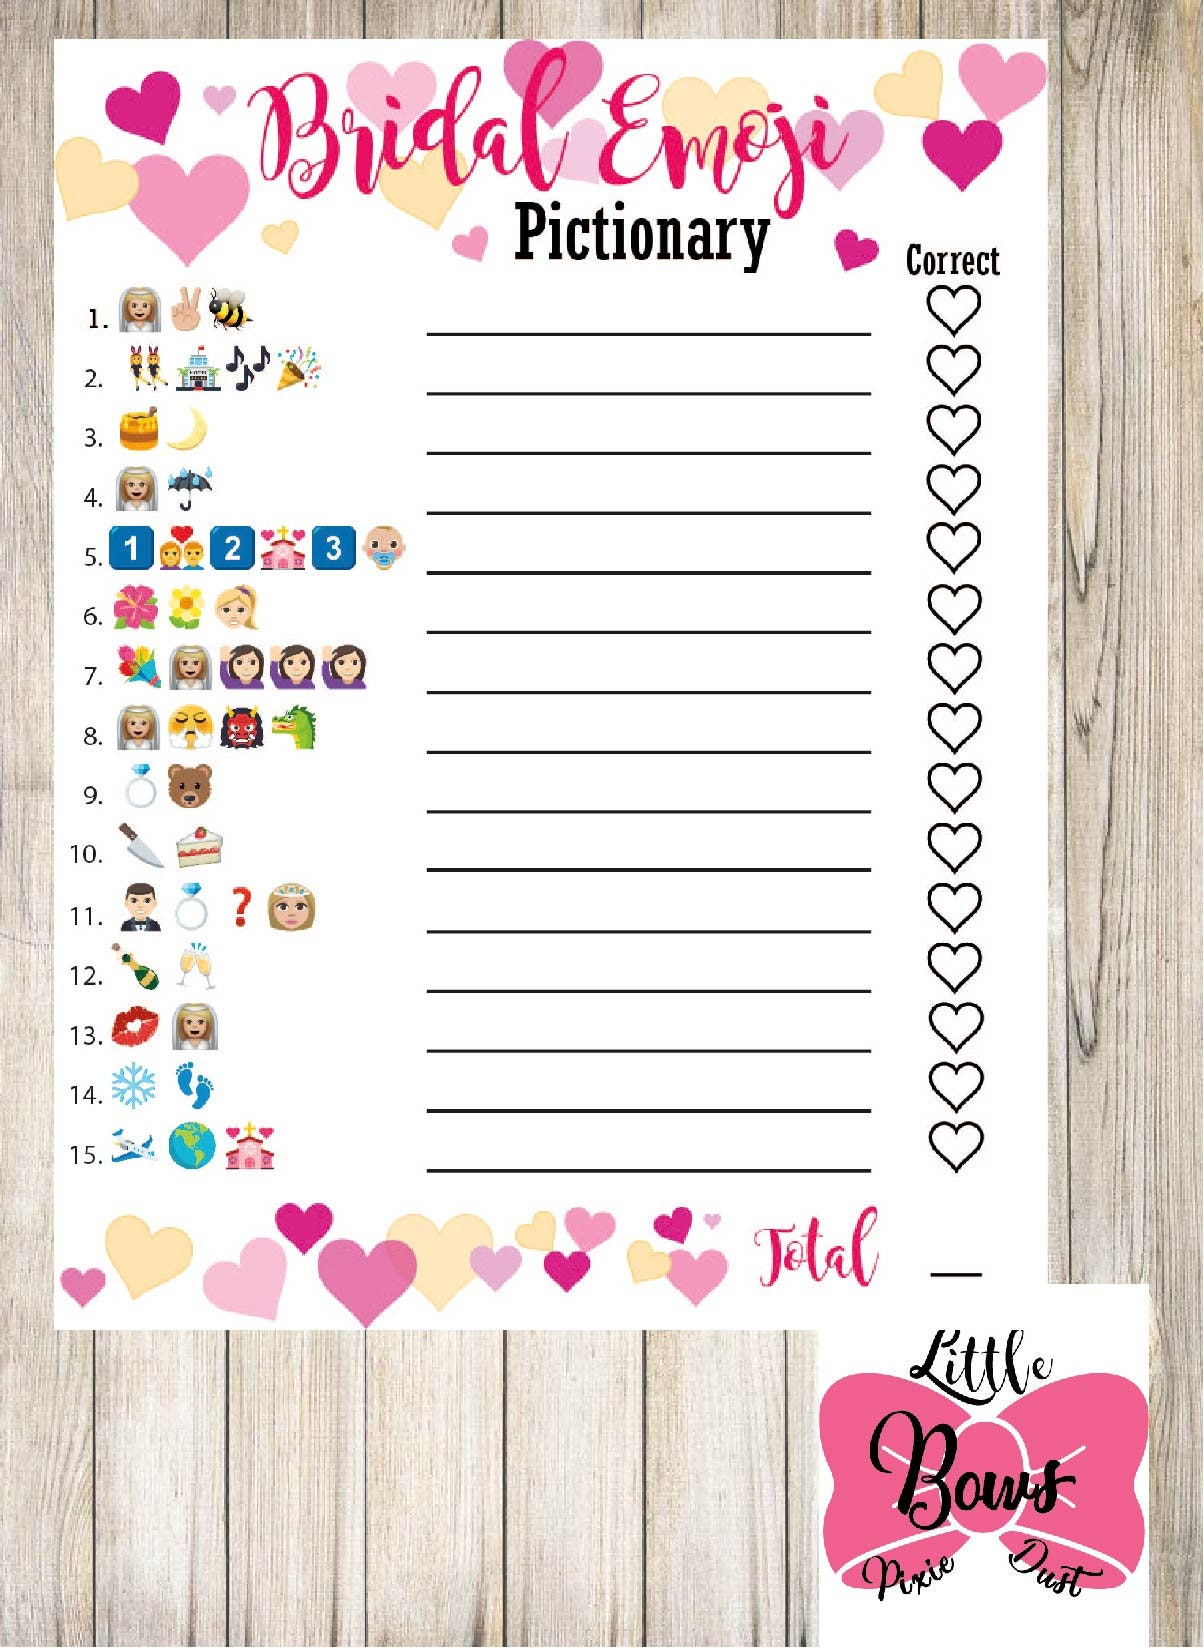 Delicate image with regard to wedding emoji pictionary free printable